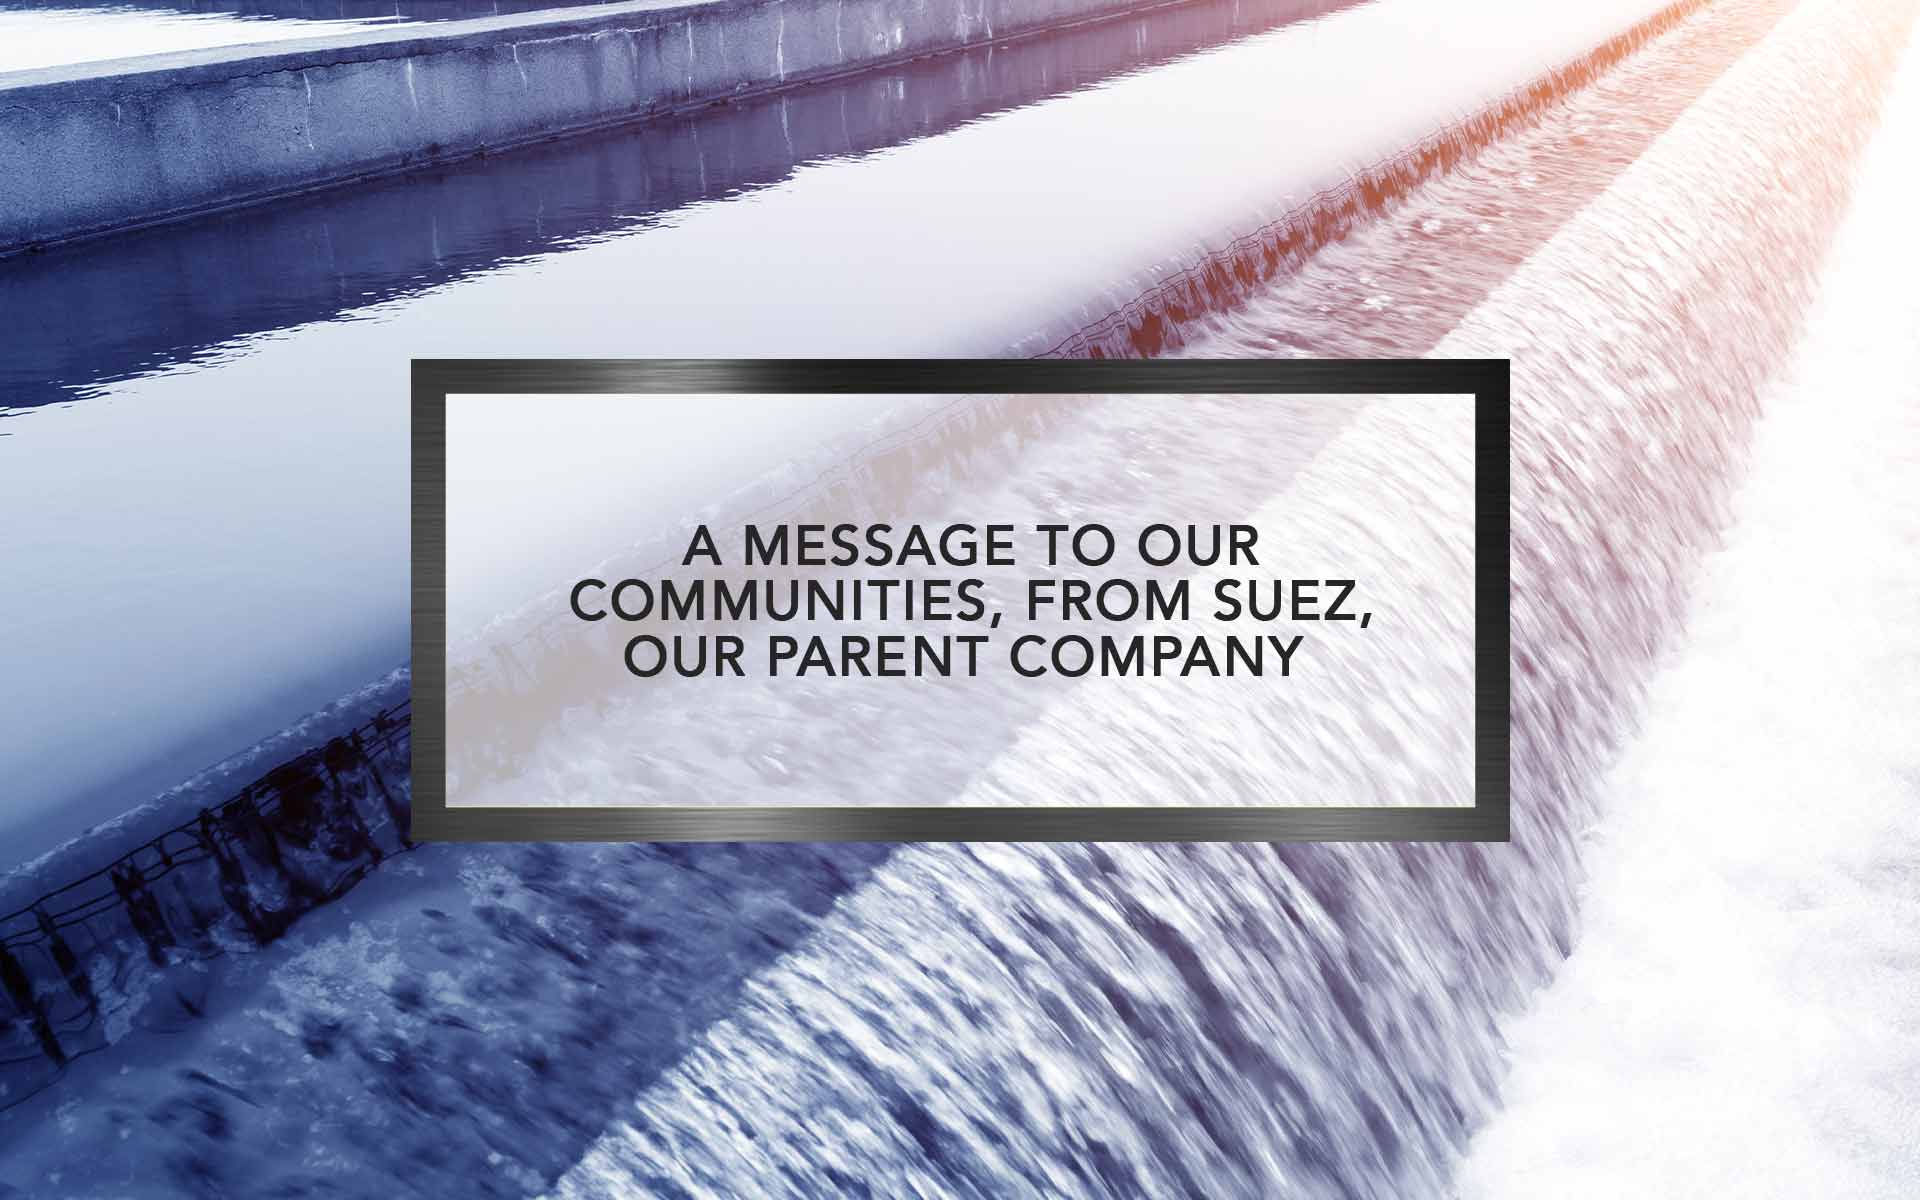 A Message to Our Communities, from Suez, our Parent Company